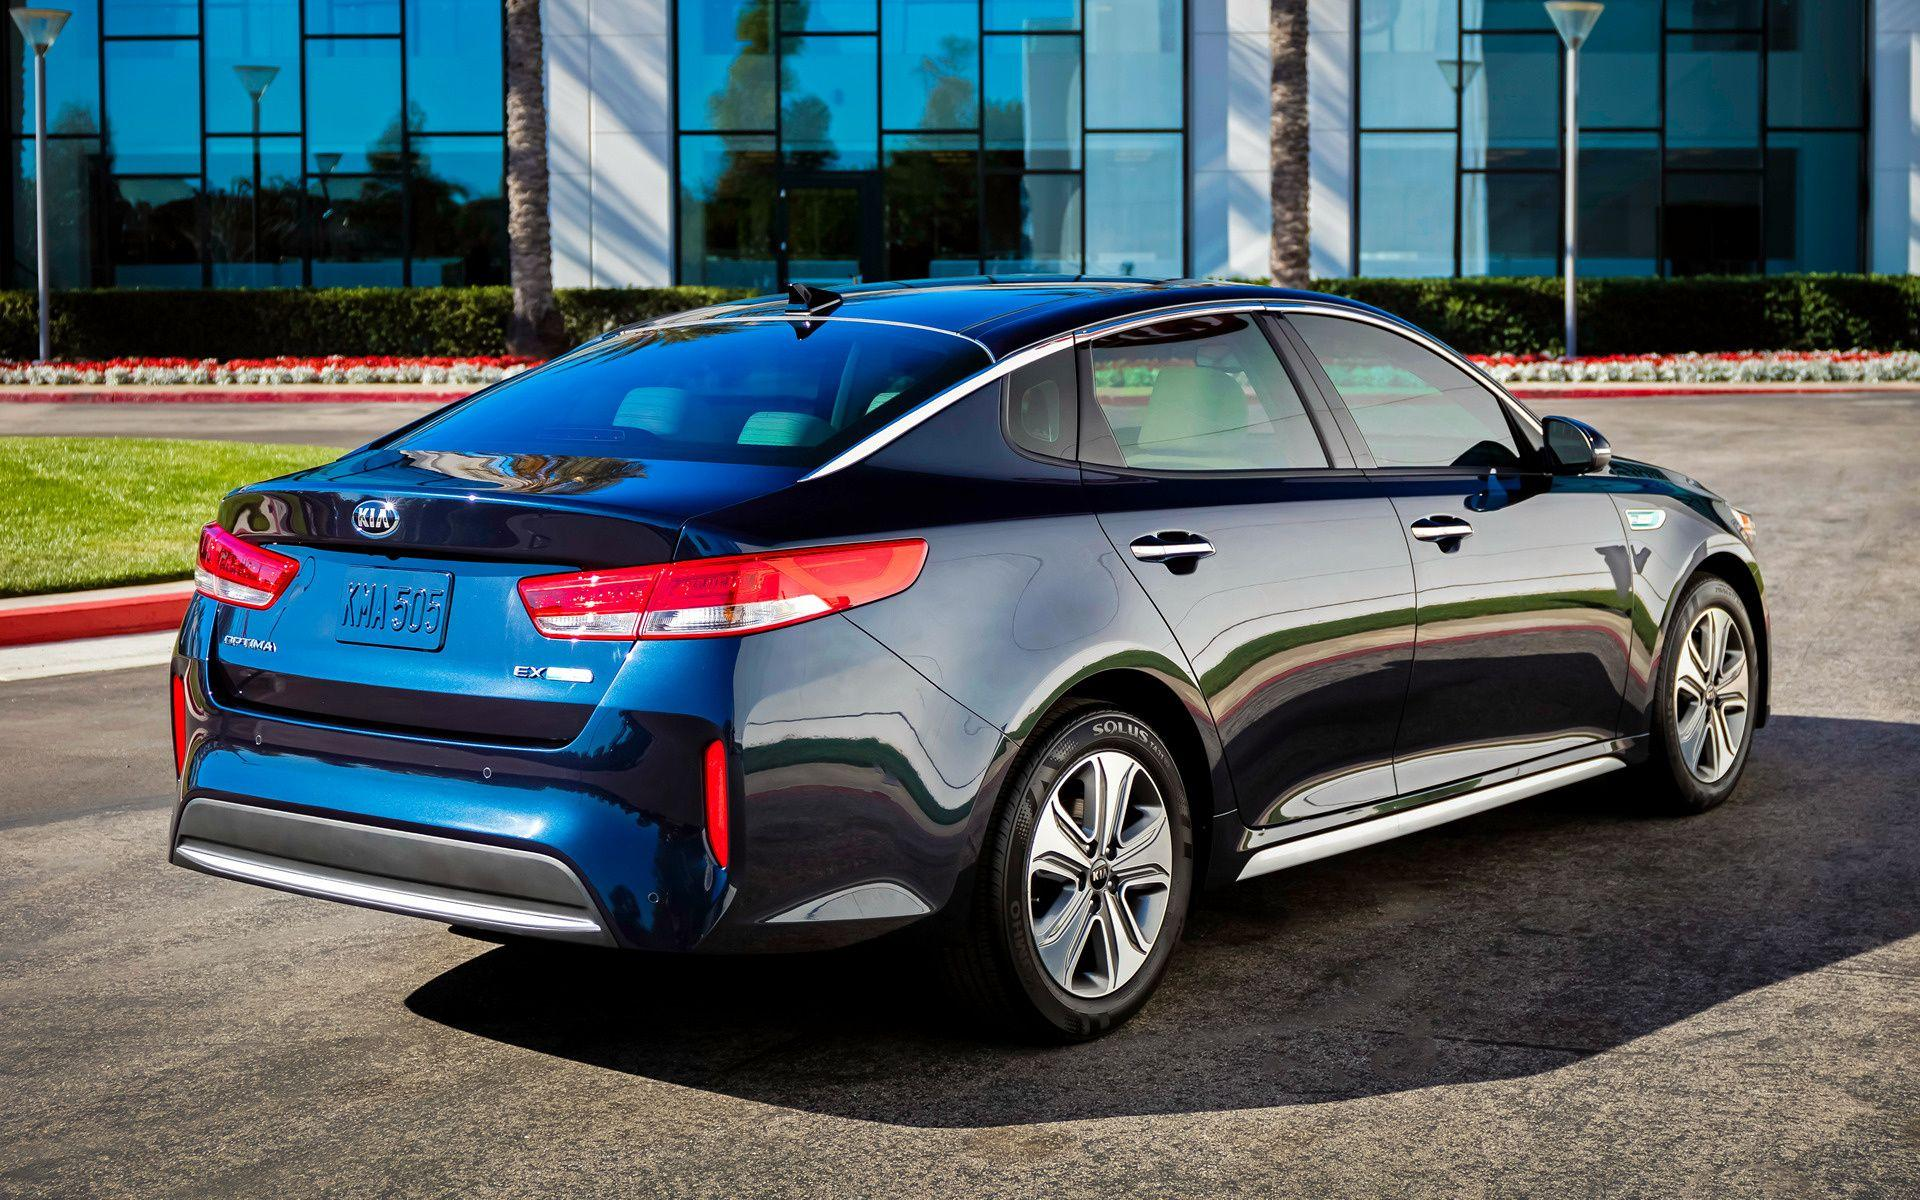 Kia Optima Hybrid EX (2017) Wallpapers and HD Images - Car Pixel